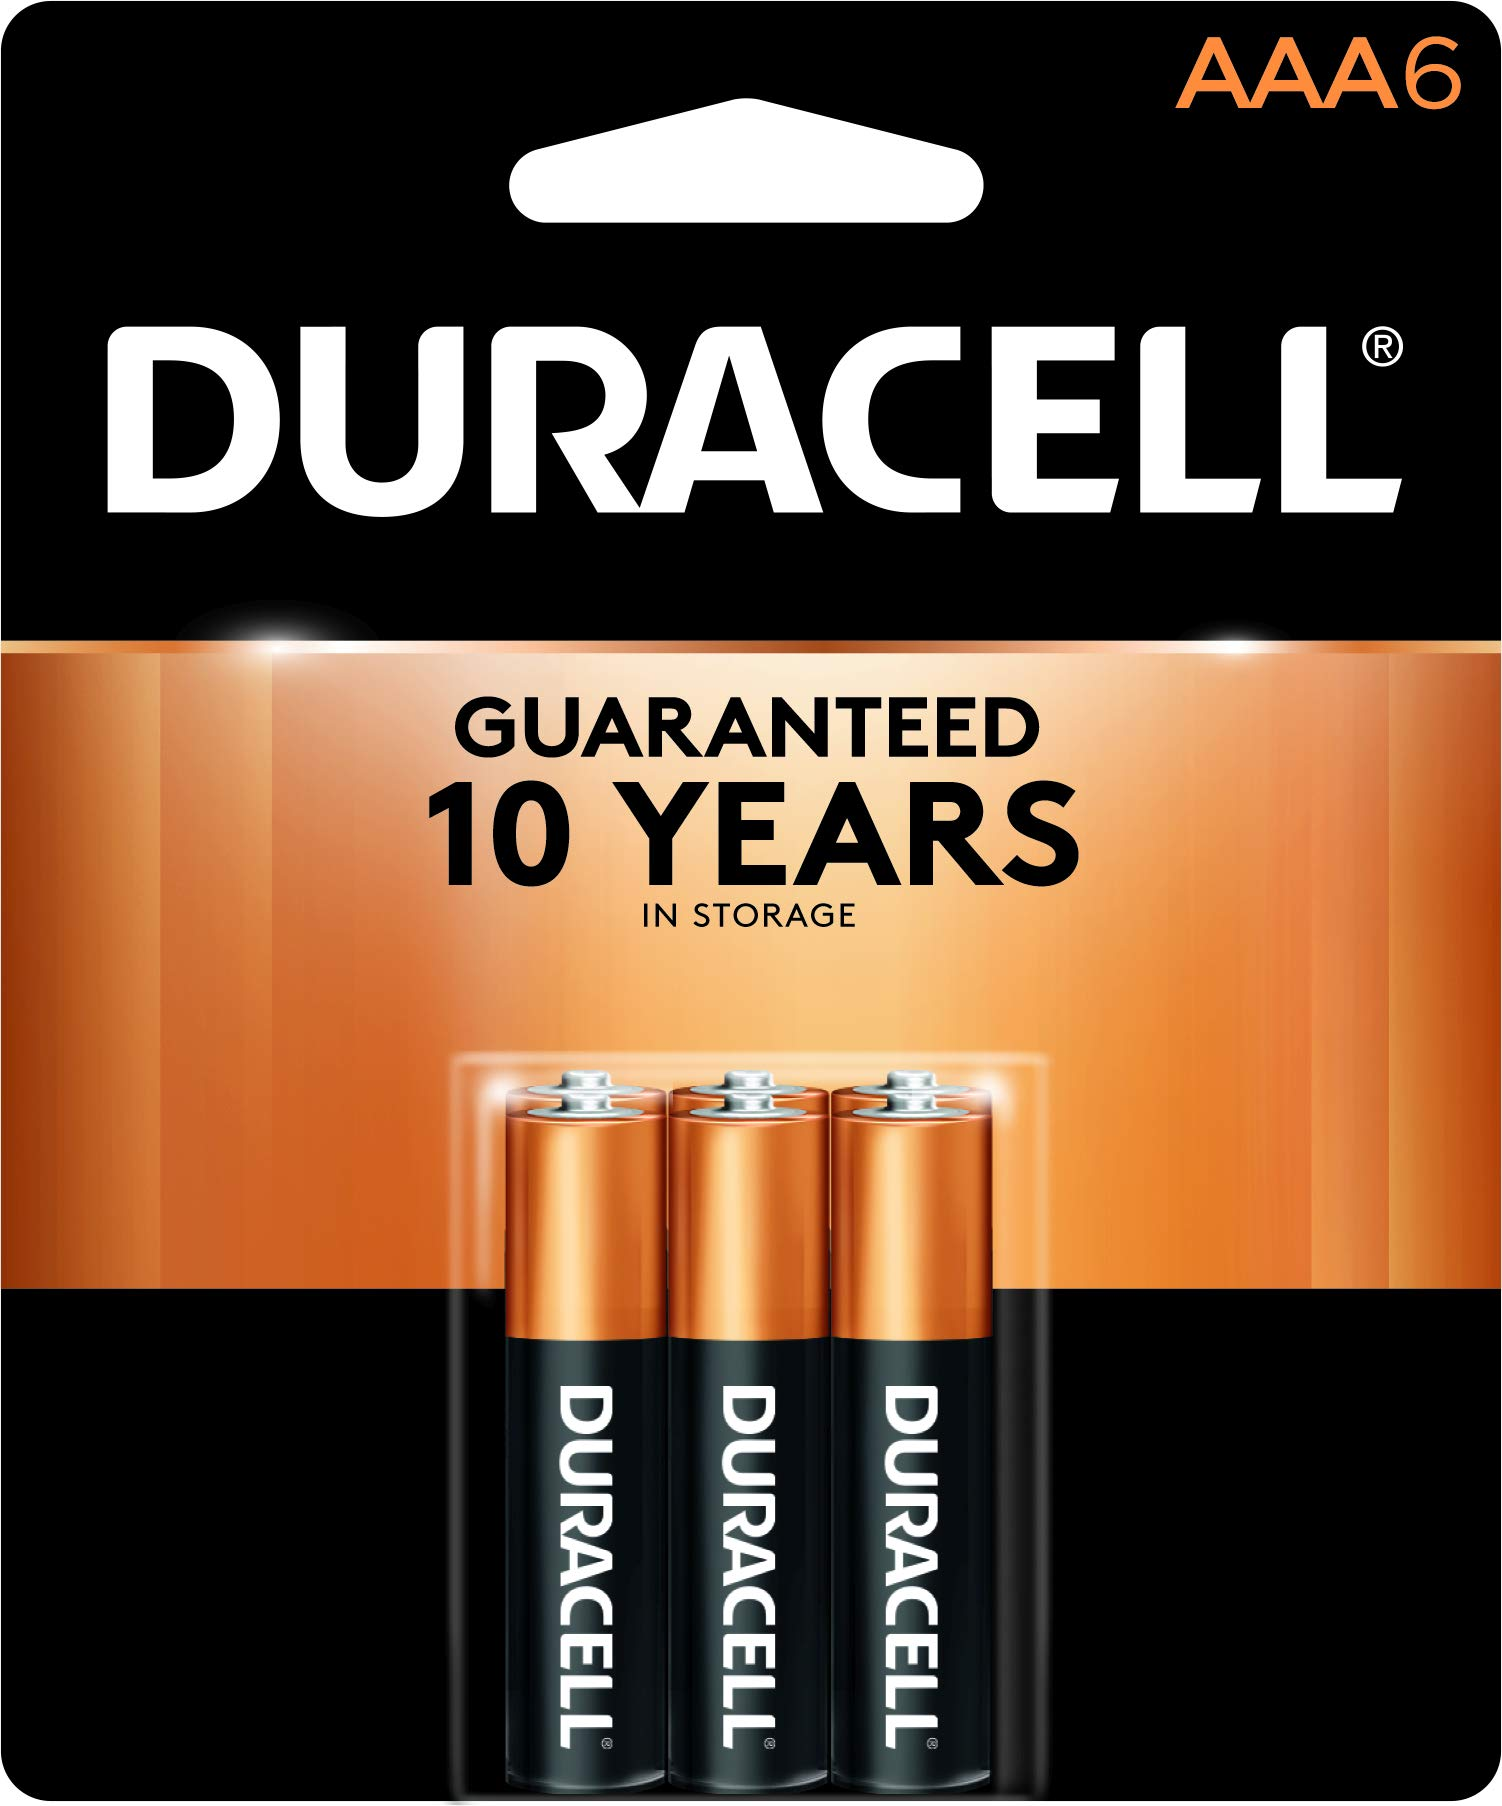 Amazon.com: Duracell - CopperTop AAA Alkaline Batteries - long lasting, all-purpose Triple A battery for household and business - 6 count: Health & Personal ...